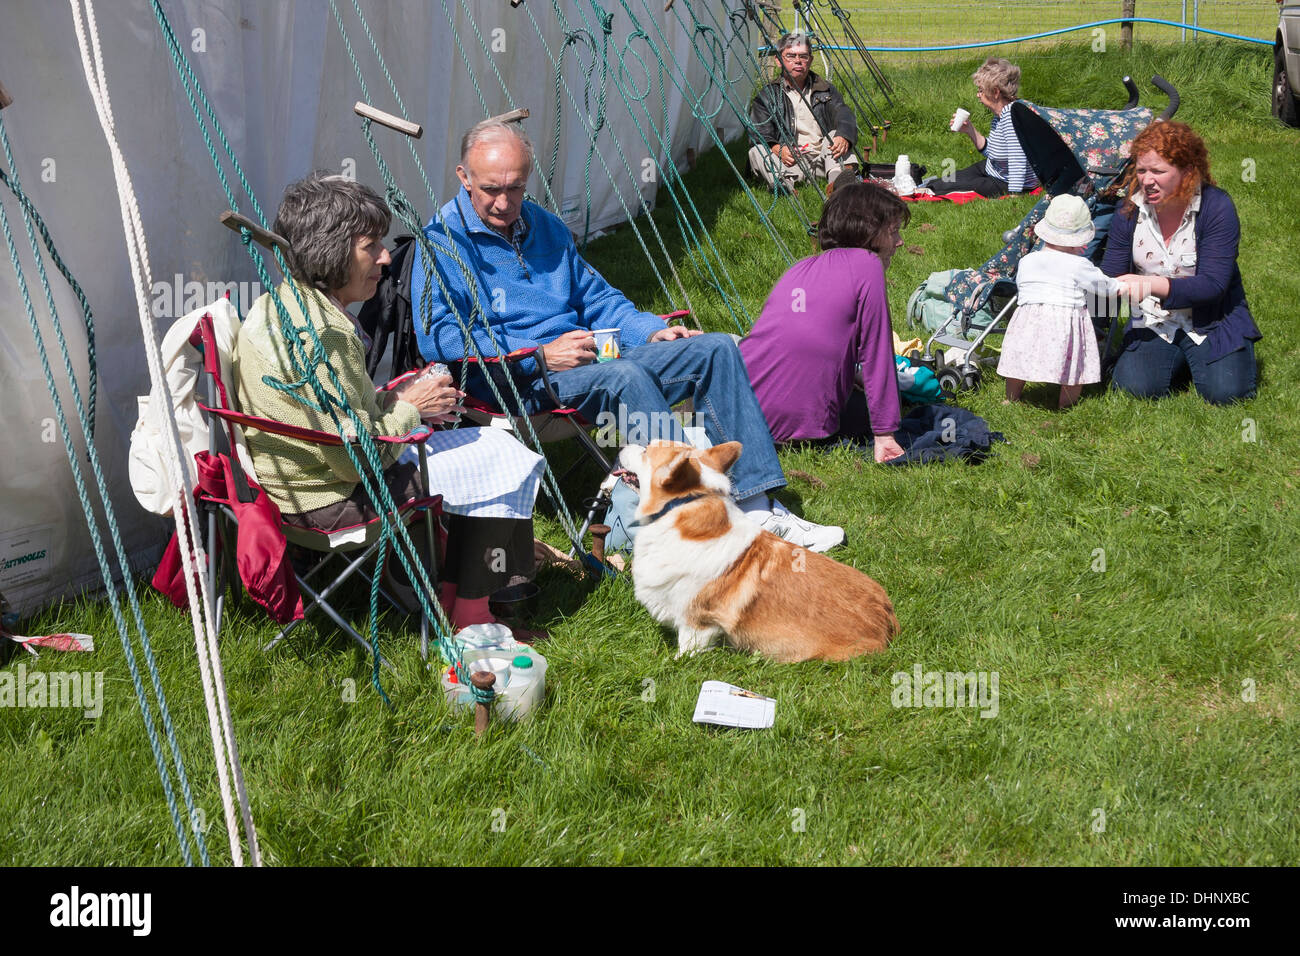 Families and pets relax at country show - Stock Image